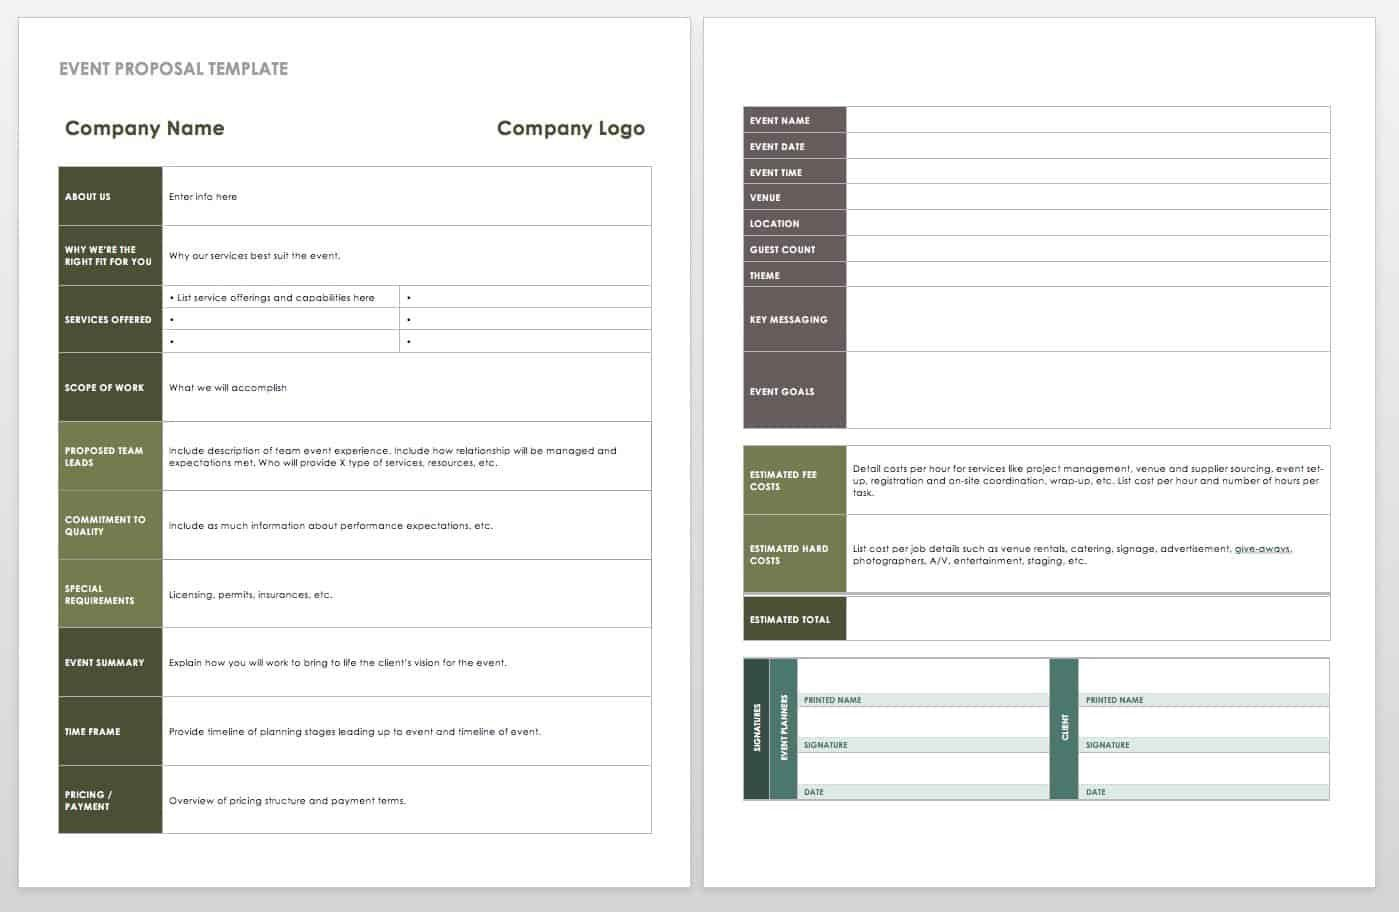 007 Magnificent Free Event Planning Template Checklist Picture  Planner PartyFull